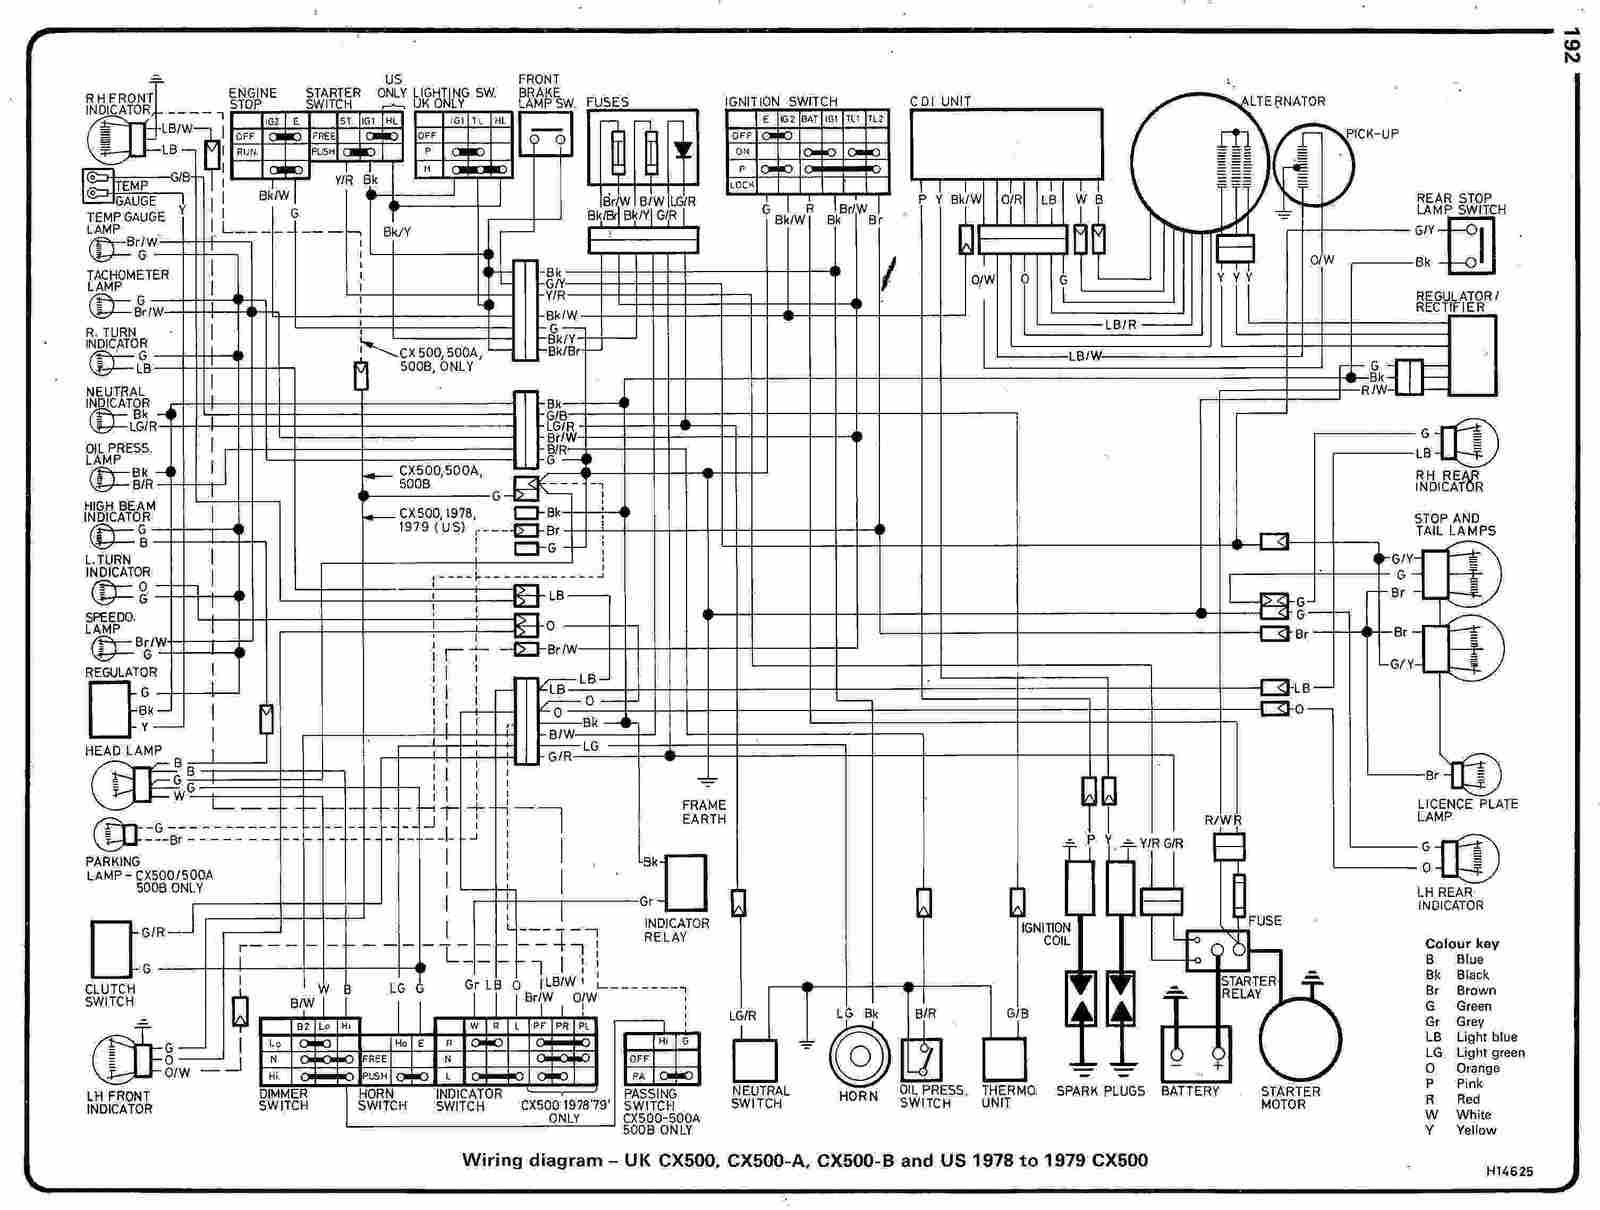 Honda+CX500+CX500 A+CX500 B+(UK)+and+CX500+(US)+1978 79+Electrical+Wiring+Diagram?resize\=665%2C503 curt wiring harness 55027 wiring diagrams forbiddendoctor org curt wiring harness diagram at webbmarketing.co